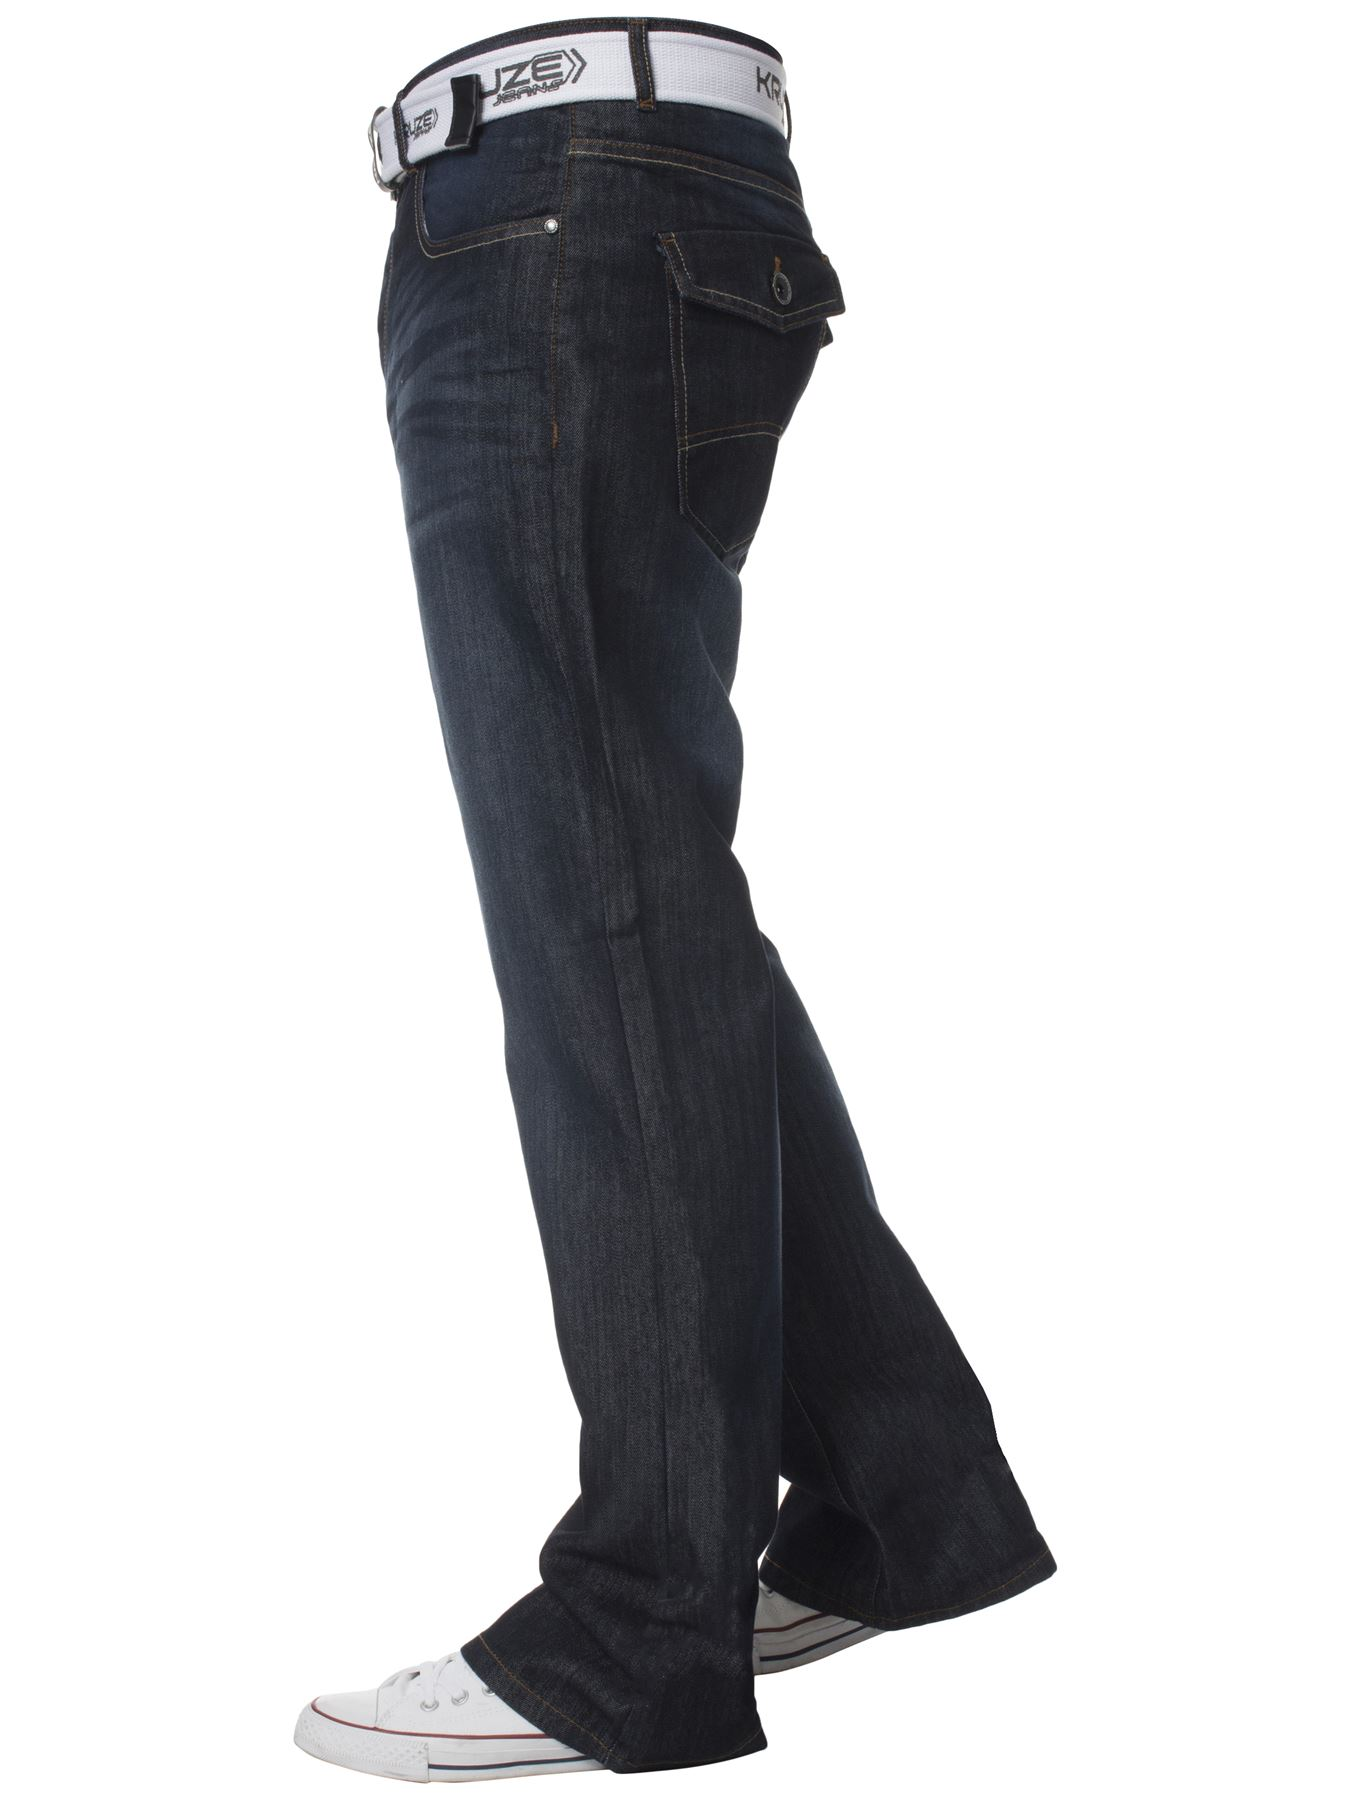 Kruze-Mens-Bootcut-Jeans-Flared-Wide-Leg-Denim-Pants-Big-Tall-King-All-Waists thumbnail 16